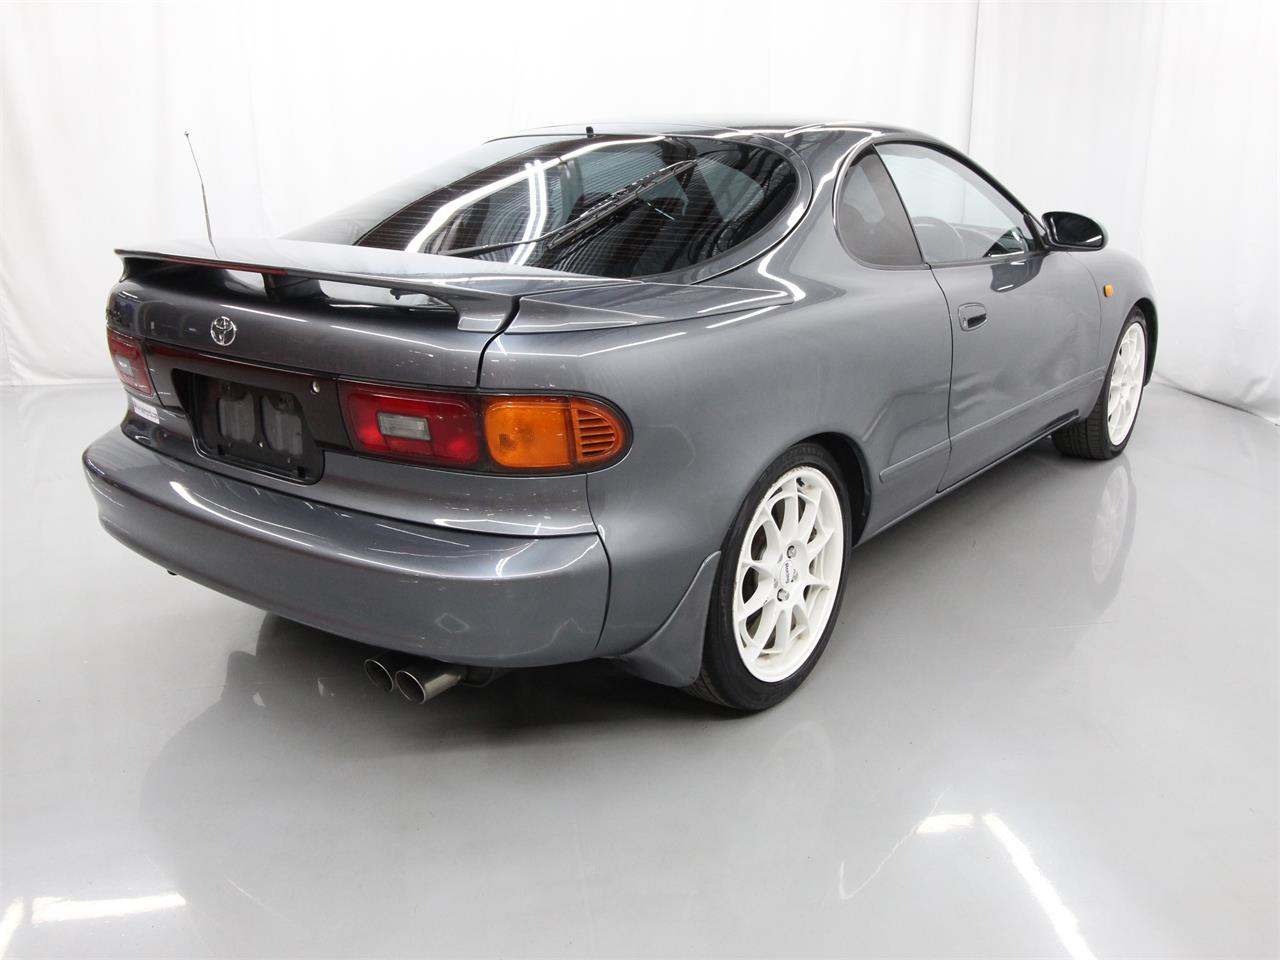 1993 Toyota Celica (CC-1238411) for sale in Christiansburg, Virginia